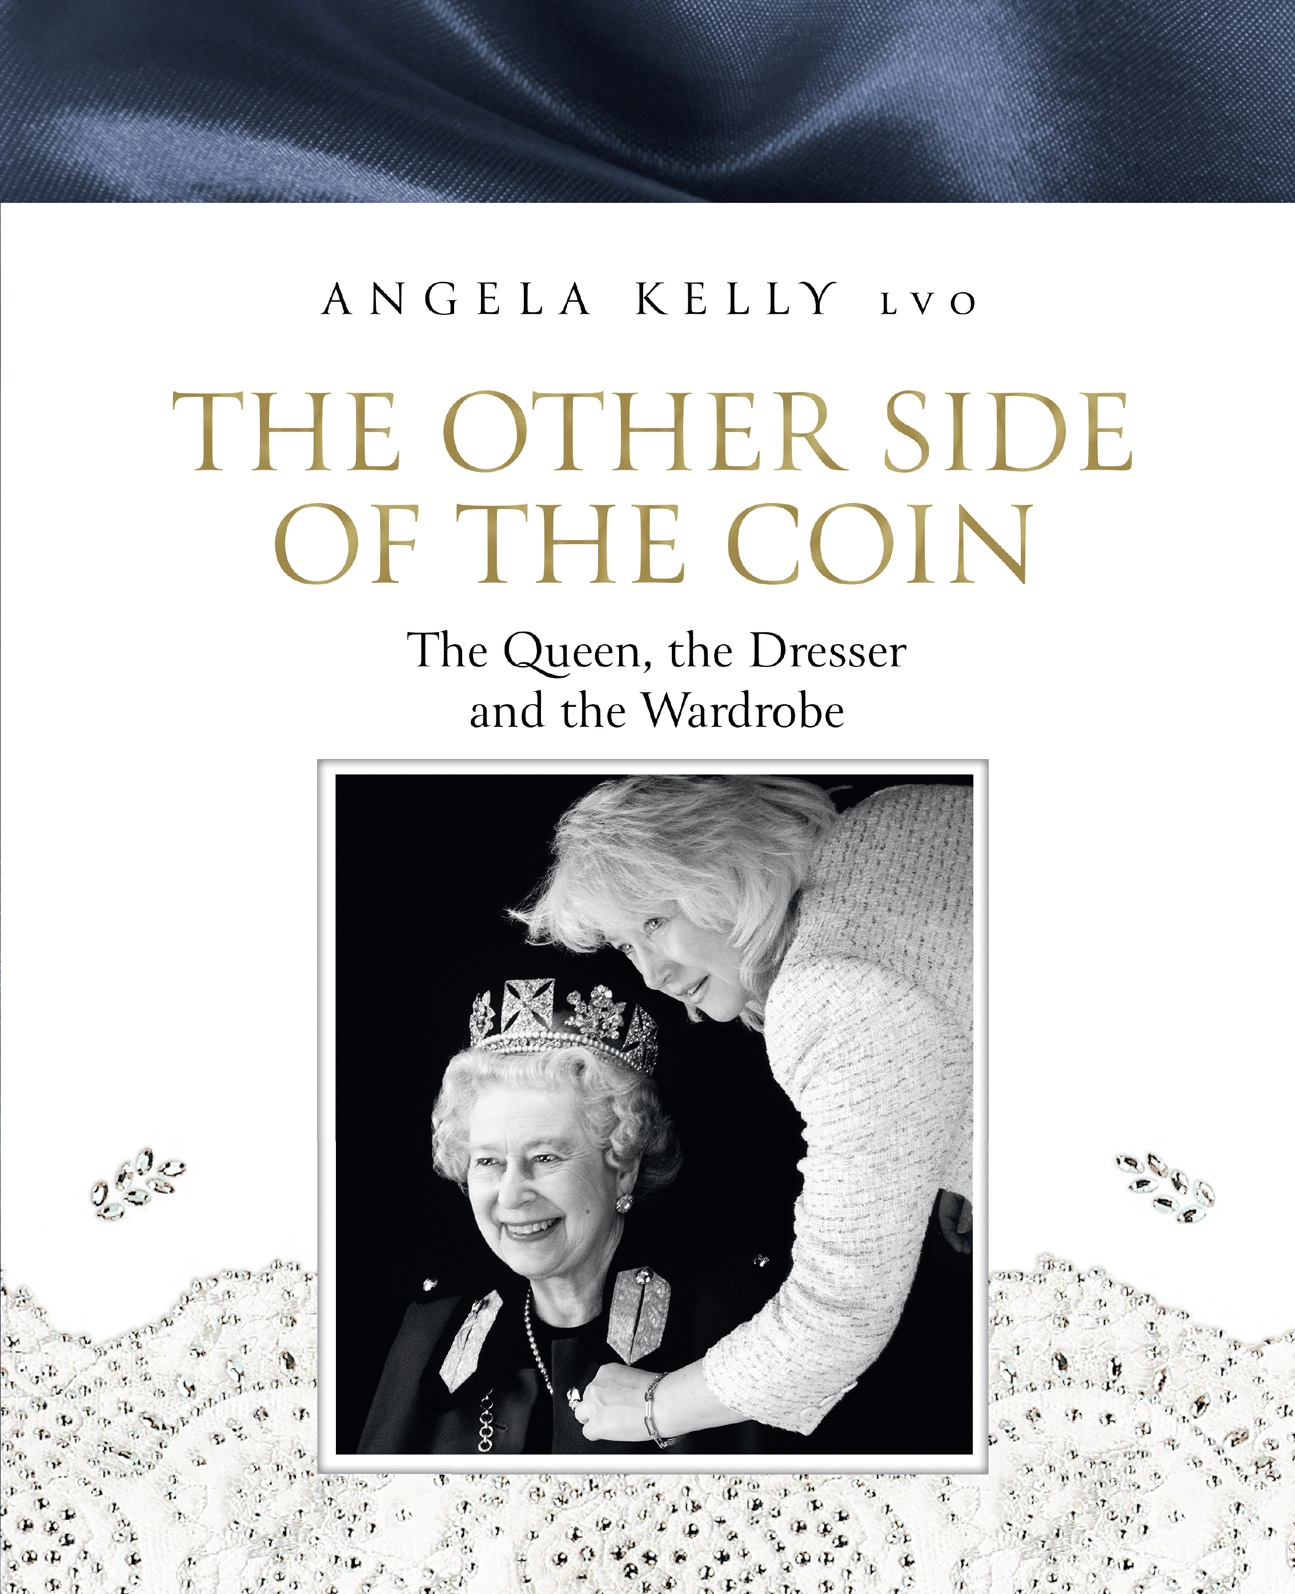 Купить книгу The Other Side of the Coin: The Queen, the Dresser and the Wardrobe, автора Angela Kelly